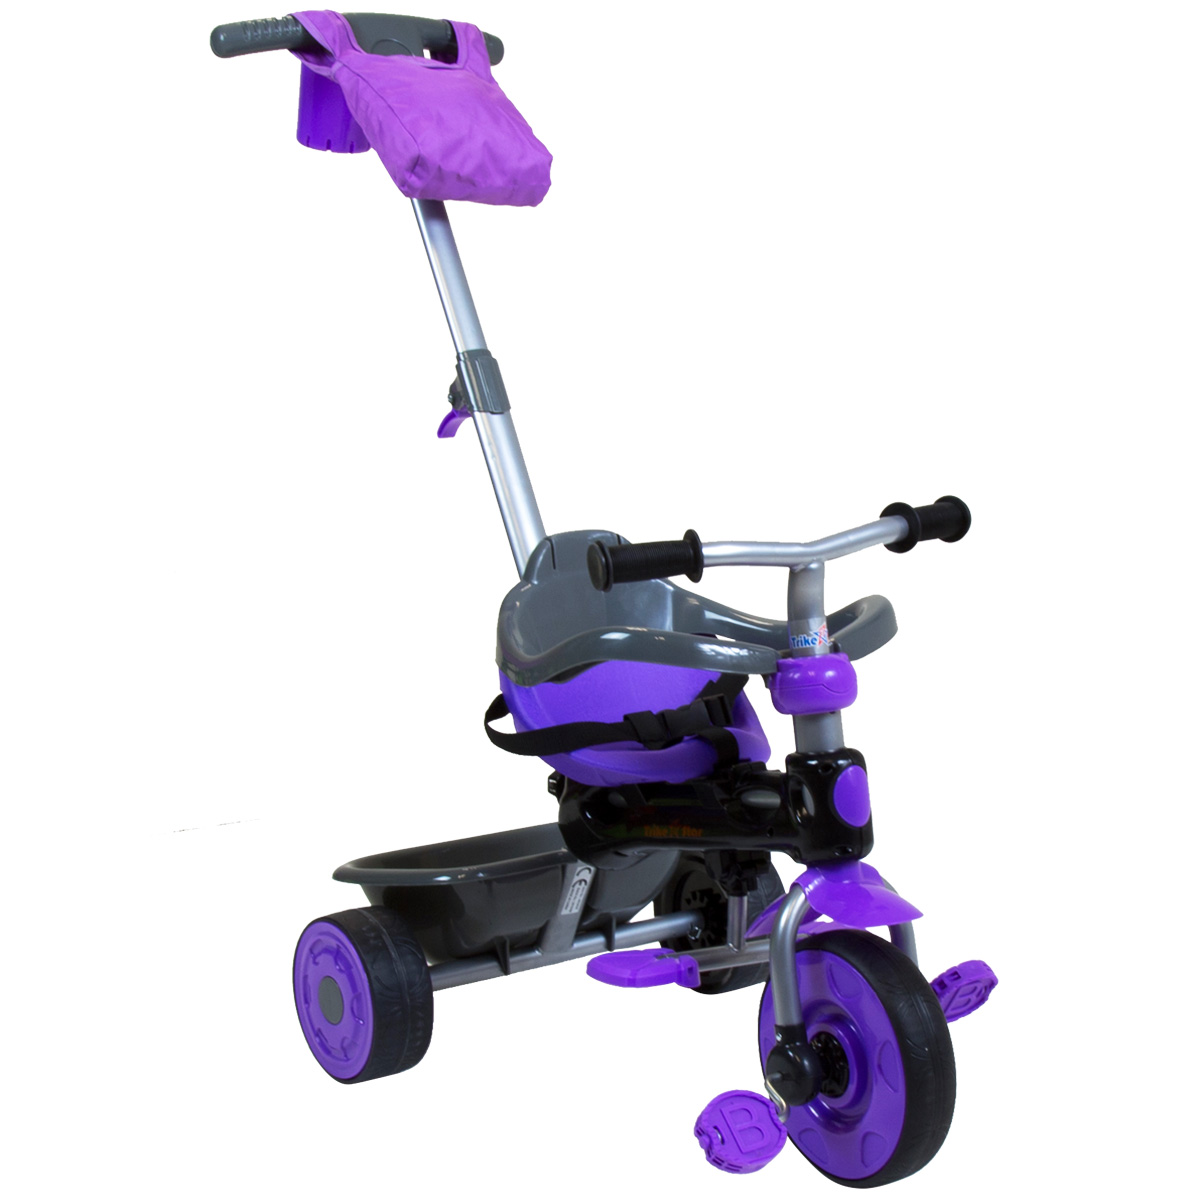 Trikestar Deluxe 4 In 1 Pedal Trike Canopy Purple Red